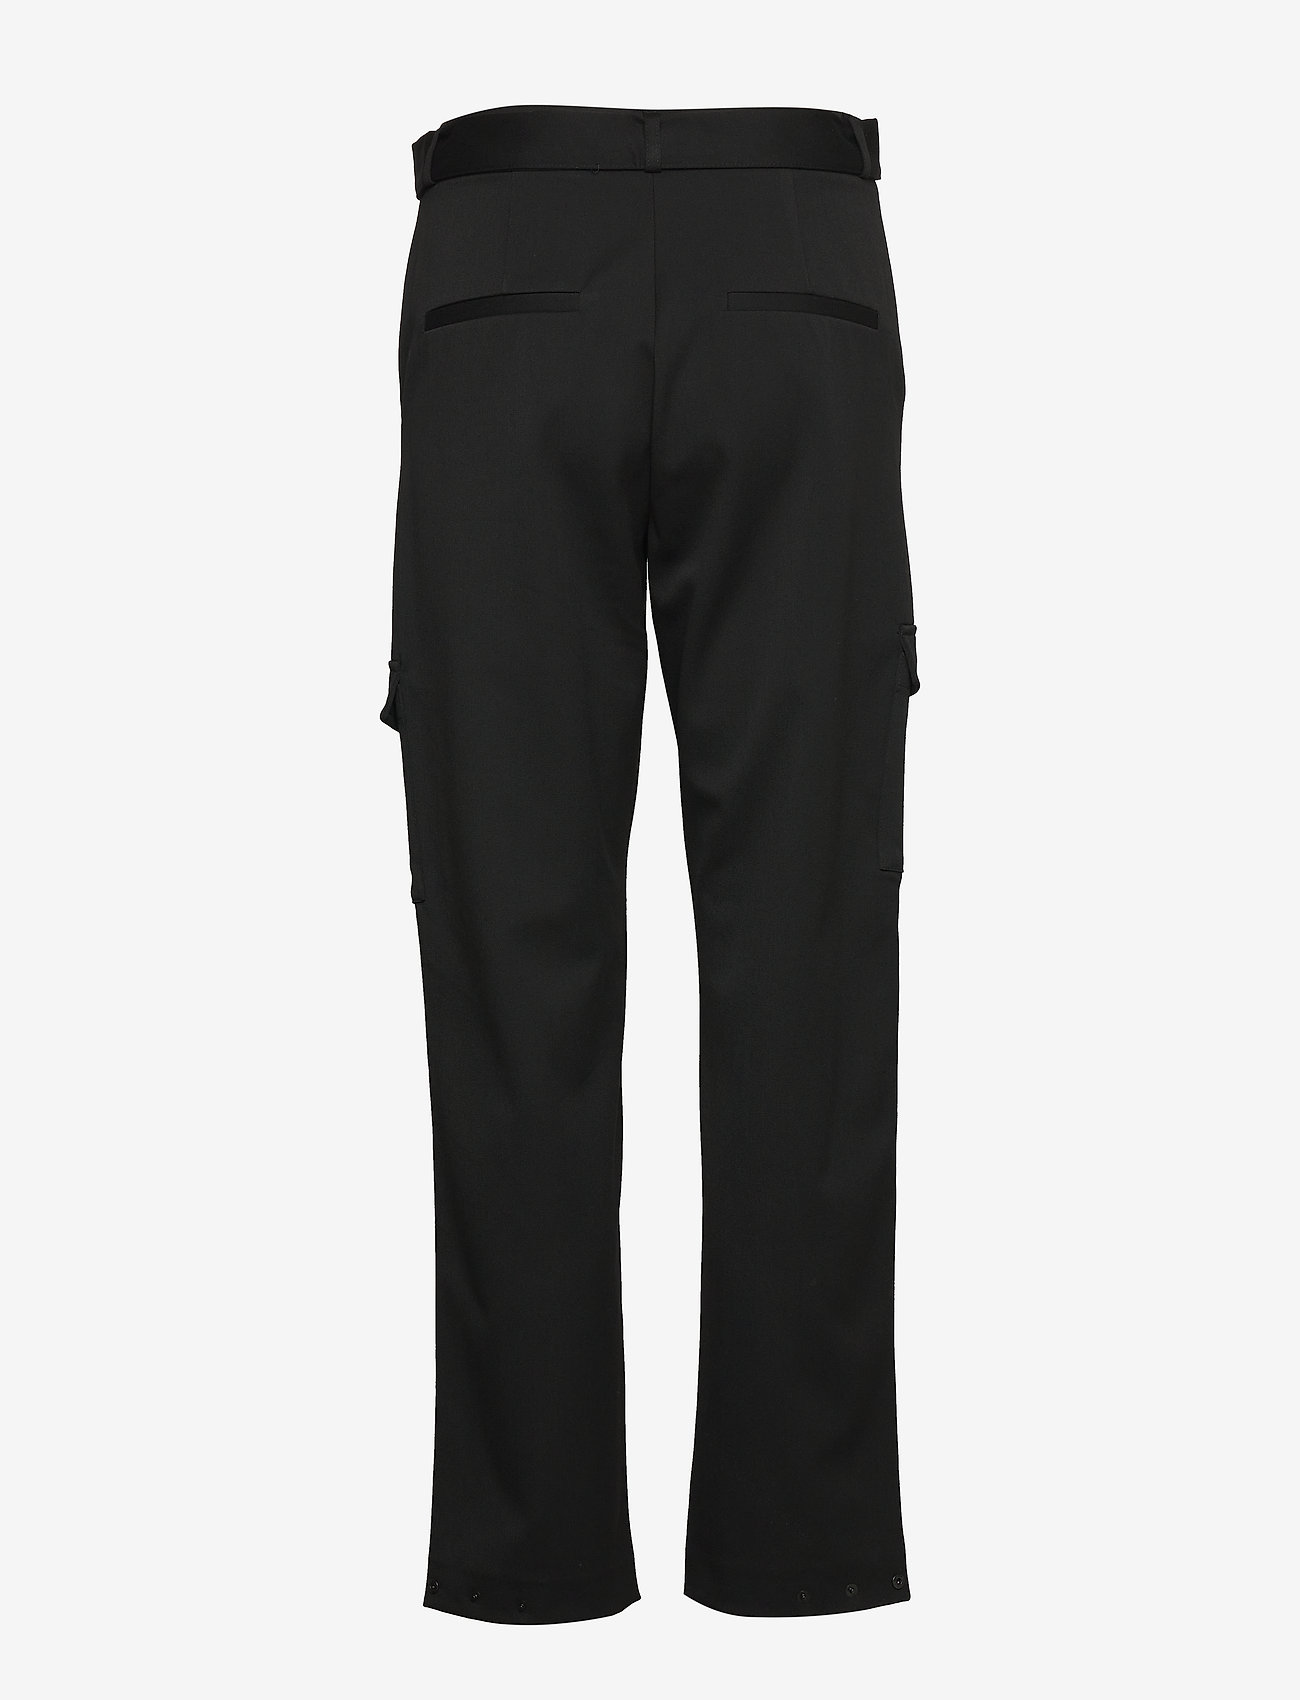 Selected Femme - SLFWILMA HW PANT EX - straight leg trousers - black - 1